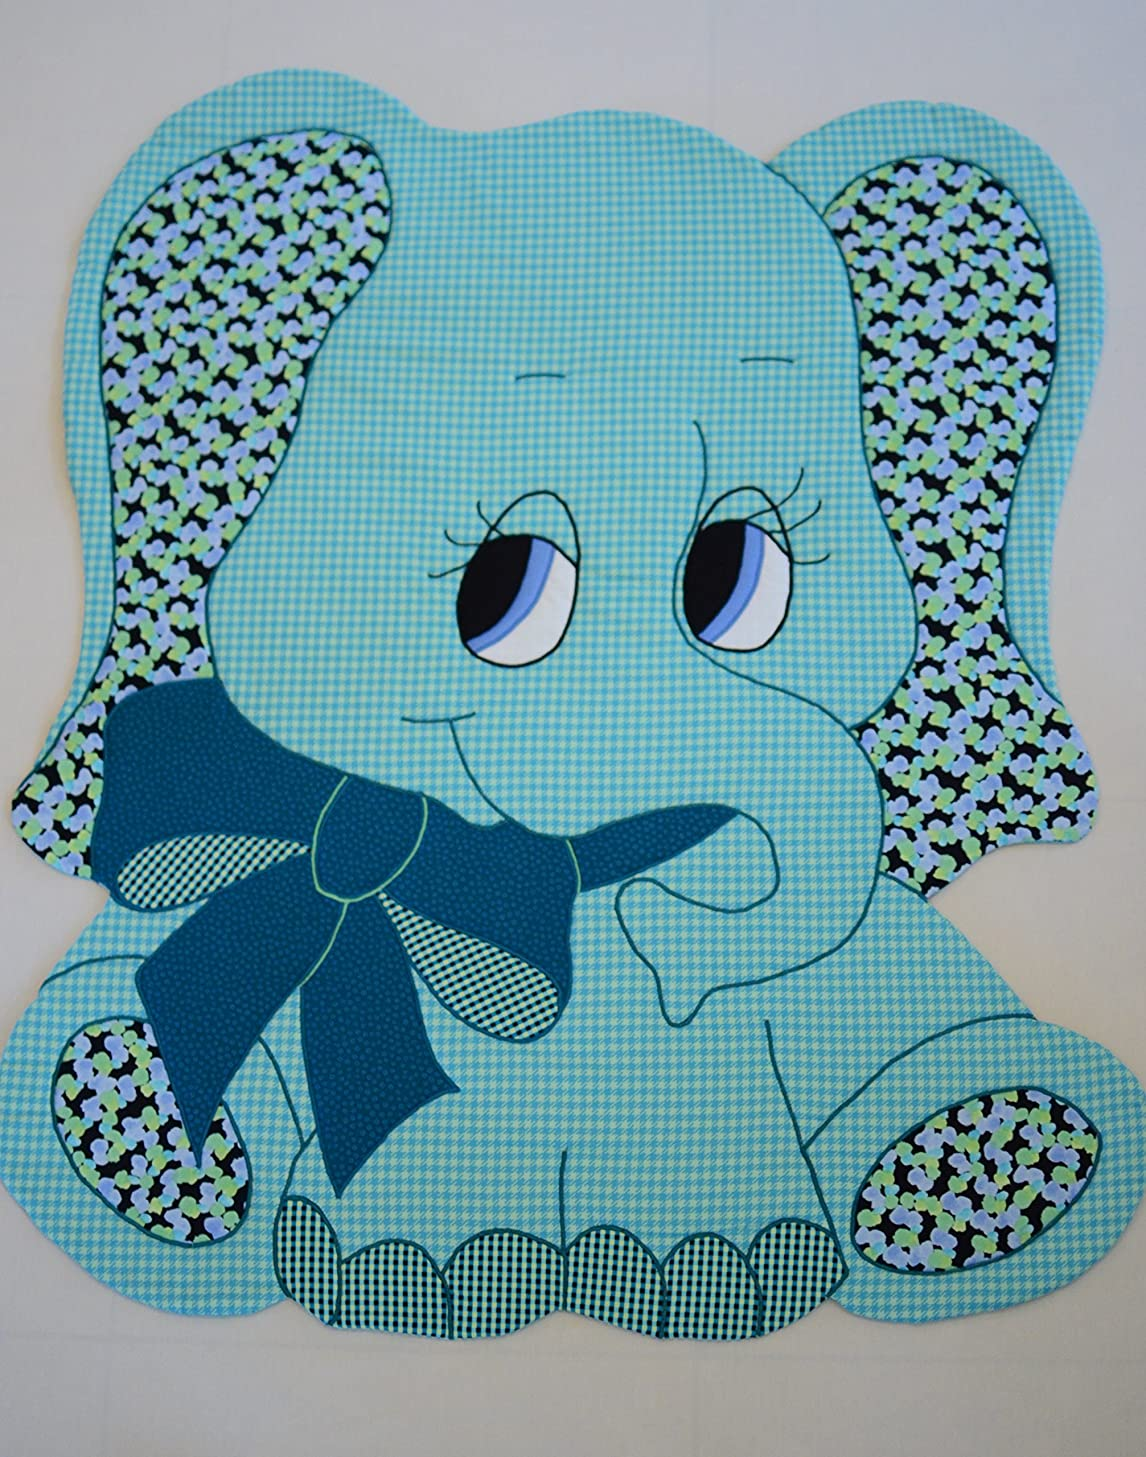 ELEPHANT - Kiddie Komfies - Sewing Quilt Pattern - 49 1/2